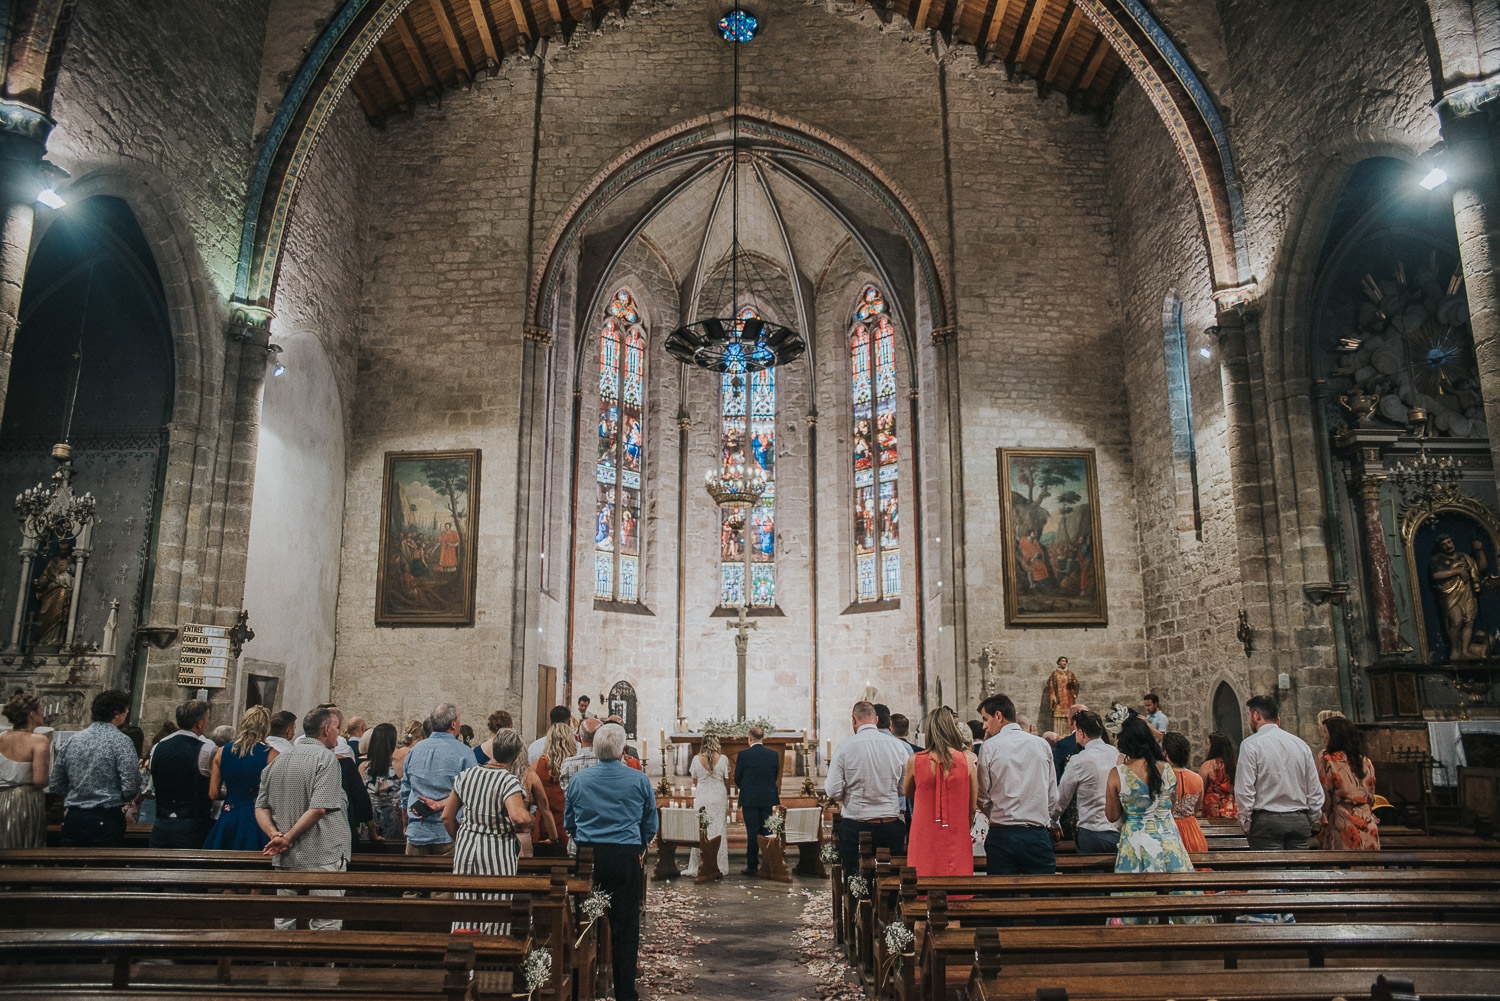 chateau_canet_carcassonne_wedding_katy_webb_photography_france_UK103